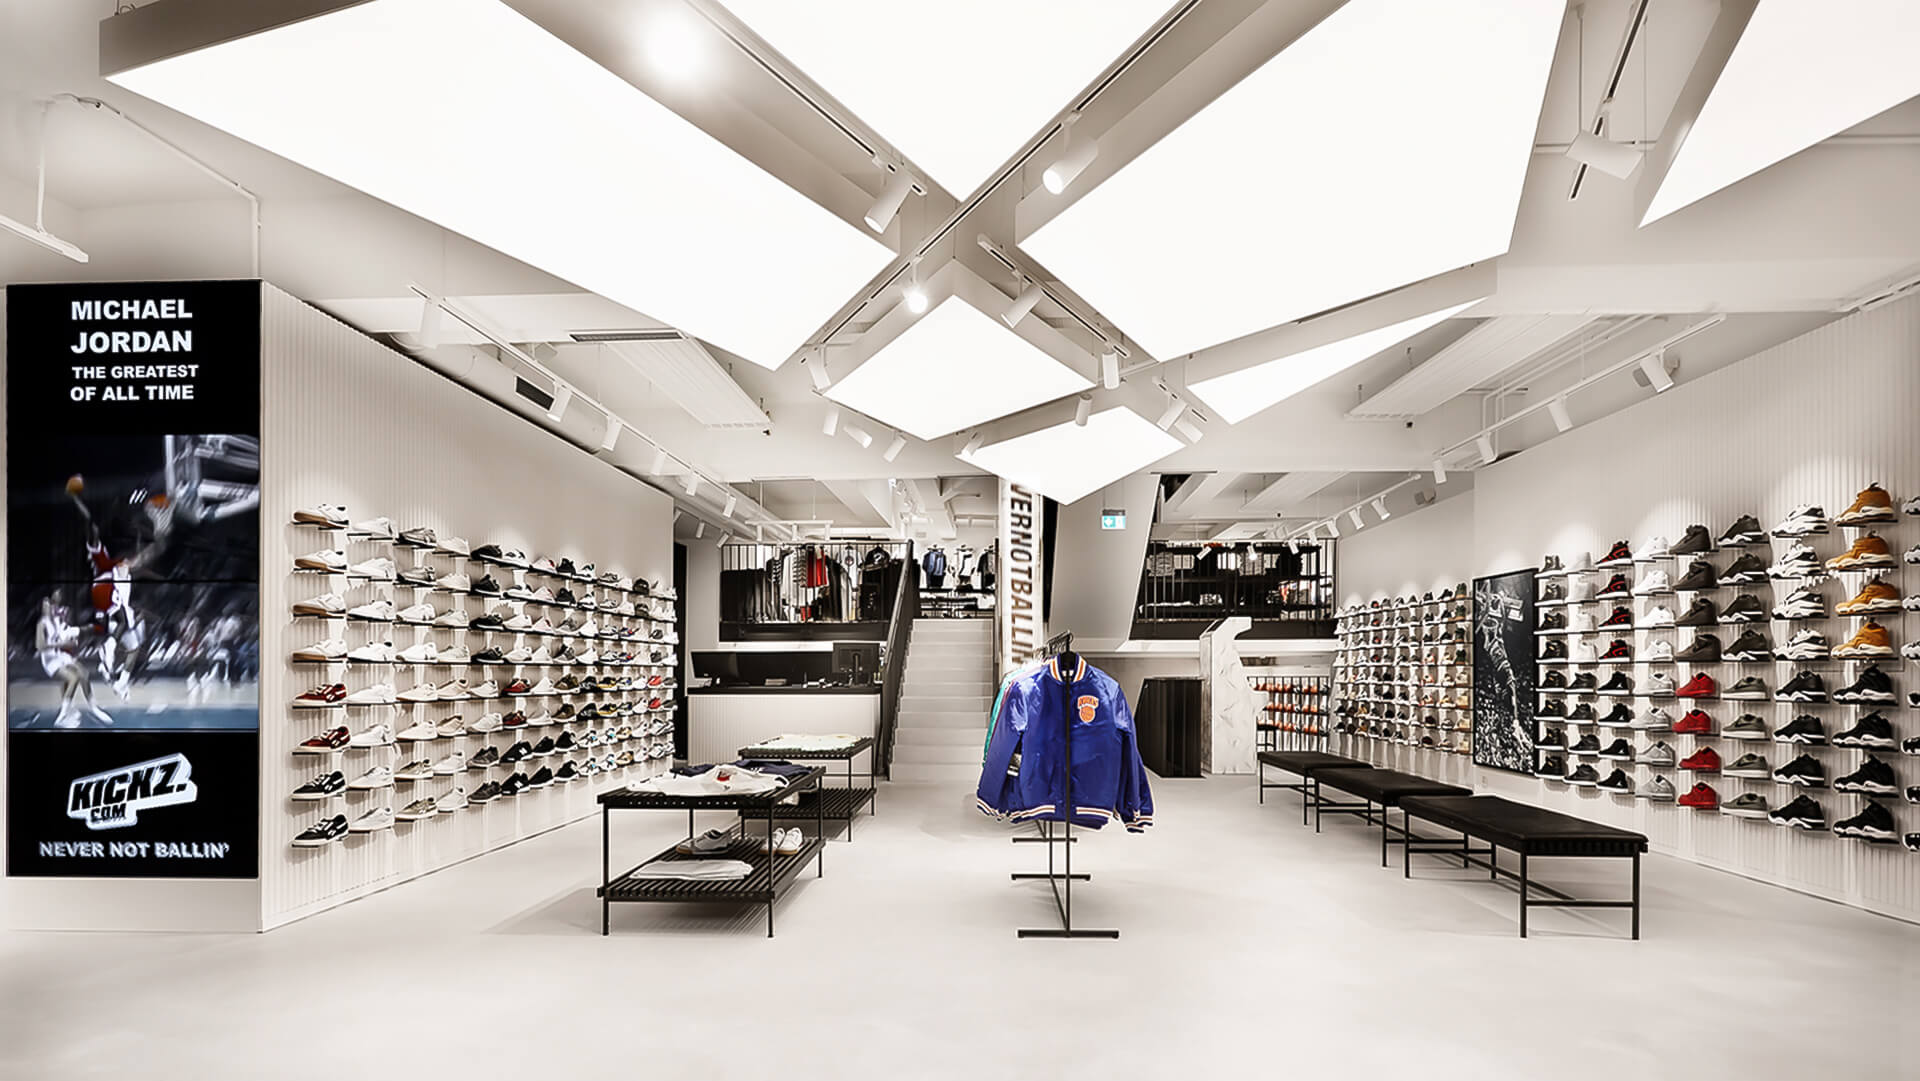 KICKZ Never not Ballin, Retail Design, Store Design, Hamburg, Retail Concept, Laden Konzept, Store Concept, Sneaker Store, Basketball Sneaker, Cool Store, Slick Architecture, Black and White Architecture, Innenarchitektur, Ladenbau, Interior Design, Turnschuh Laden, Zalando, 2018